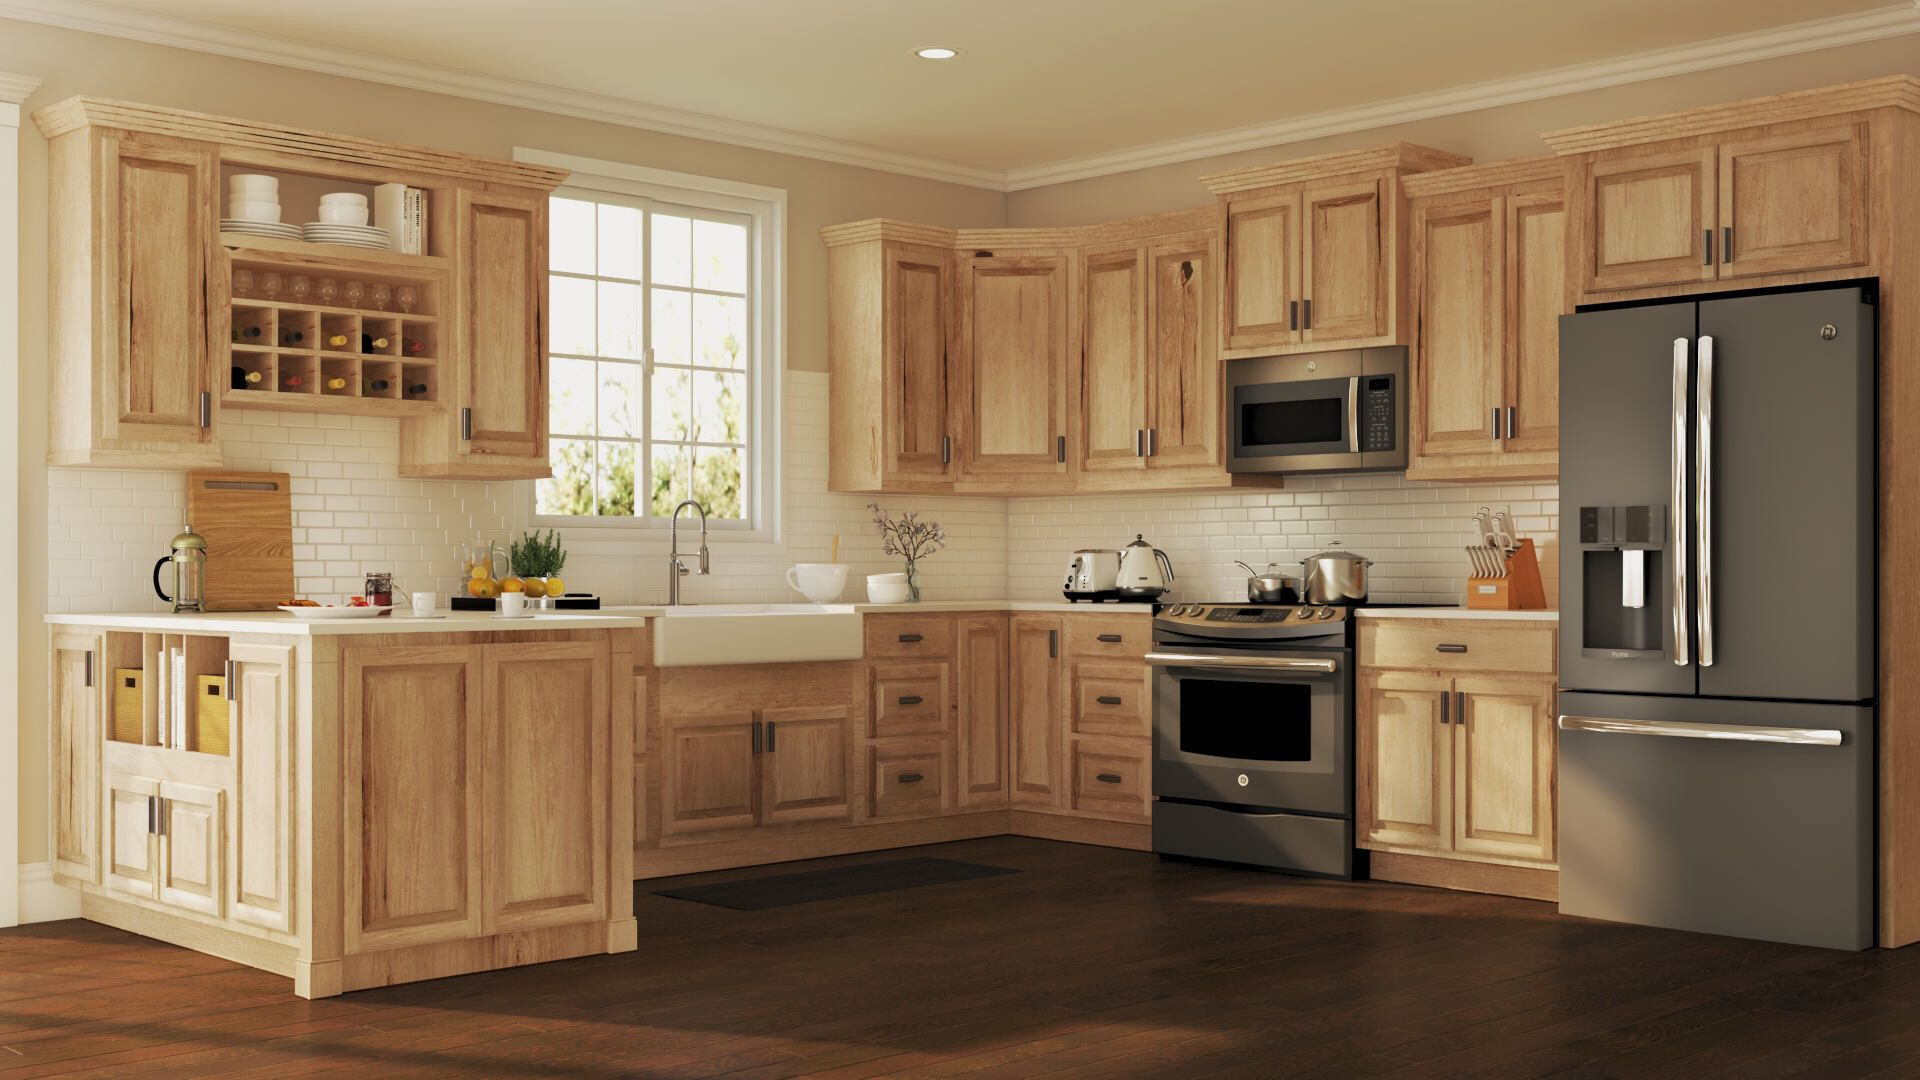 Hickory Cabinets Used Kitchen Cabinets Kitchen Cabinet Styles Kitchen Cabinets Home Depot